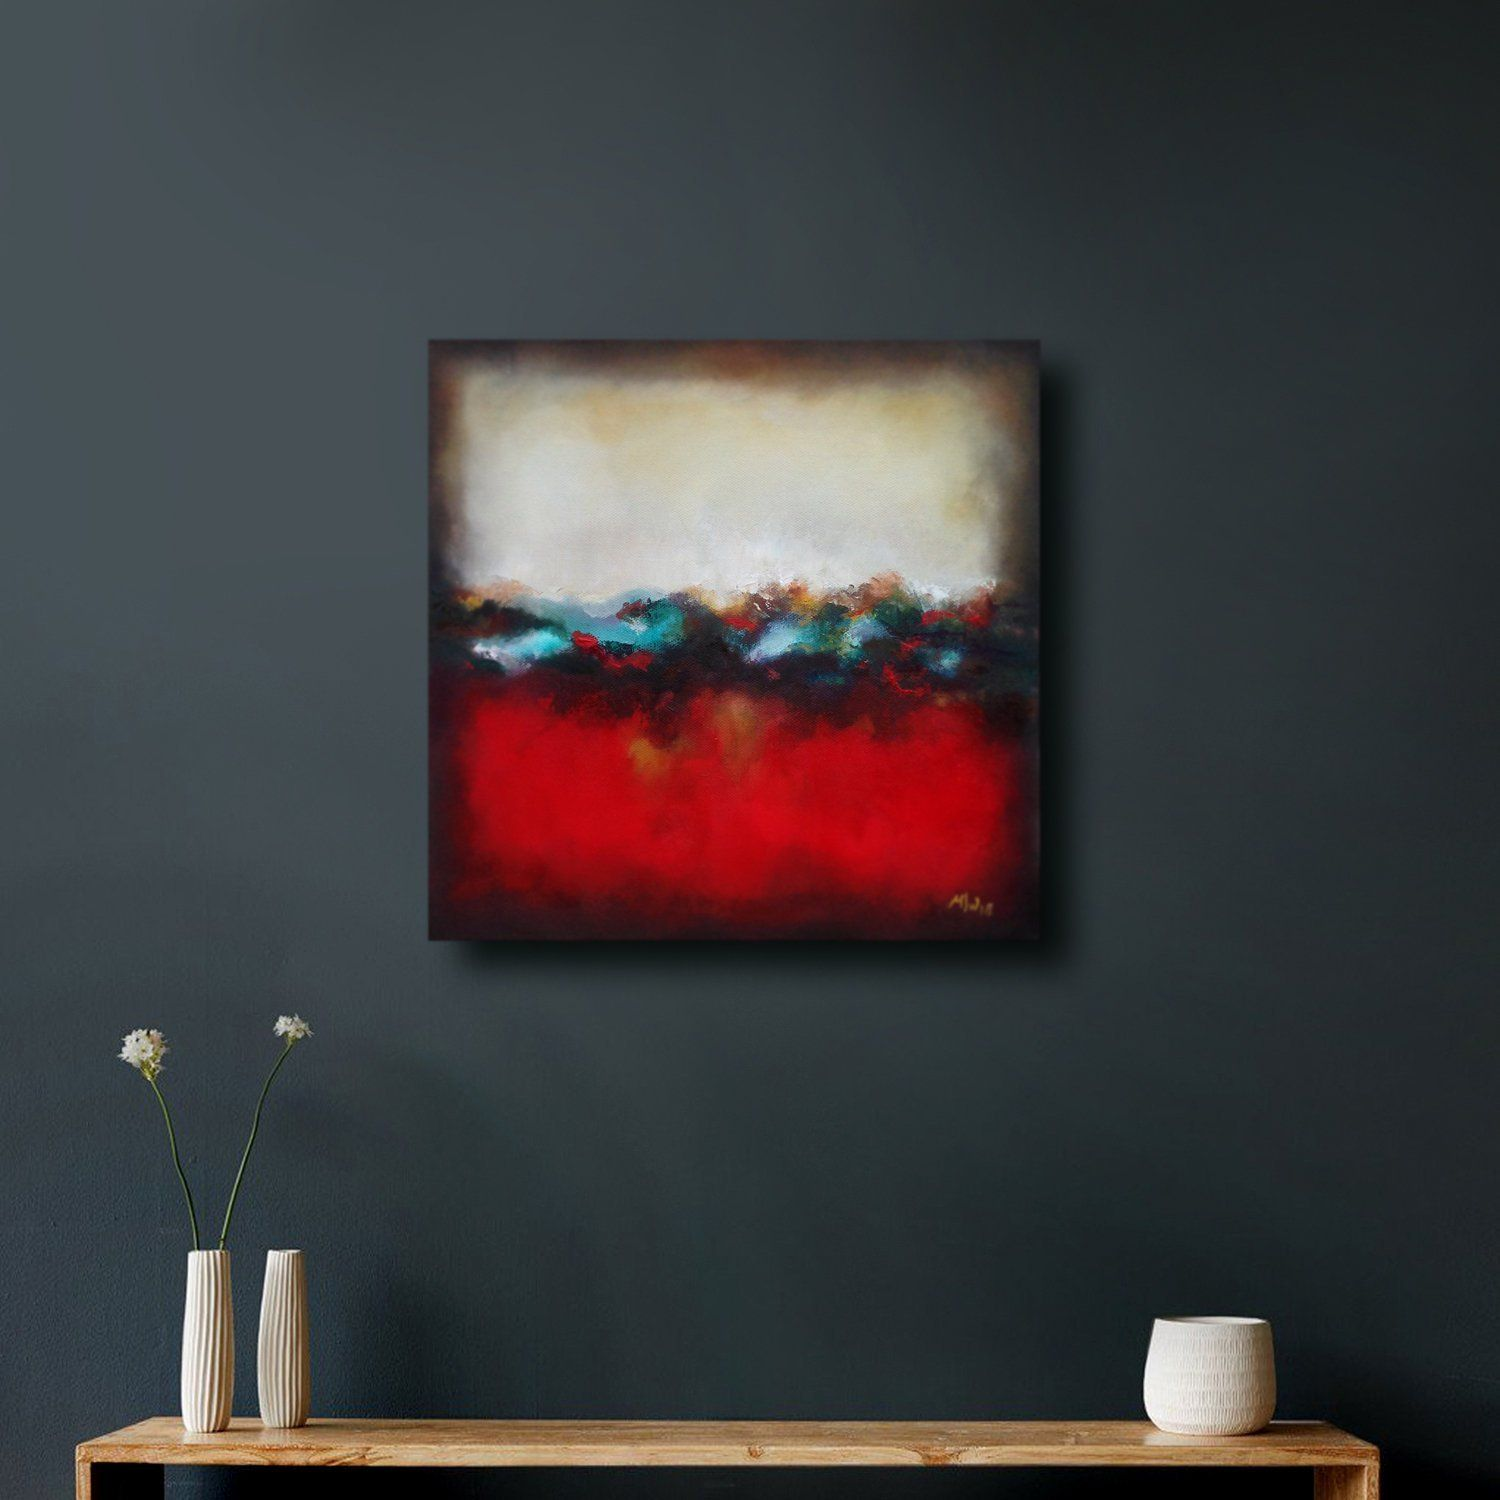 Dreamscape abstract canvas wallart painting unframed ready to hang fineart abstract modern oil paint vivid artwork